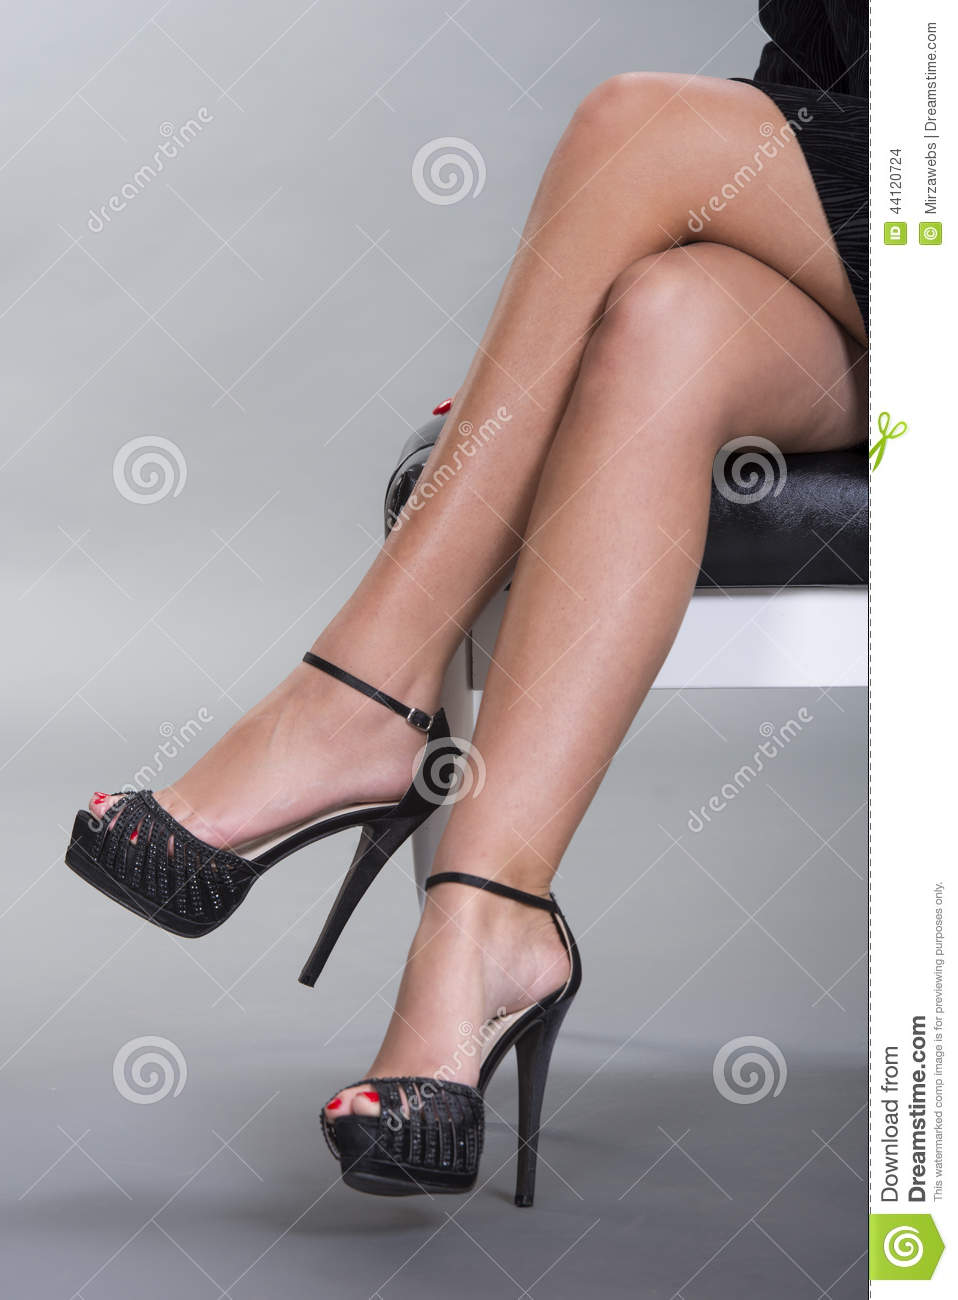 Sexy Legs And High Heels Stock Photo Image 44120724